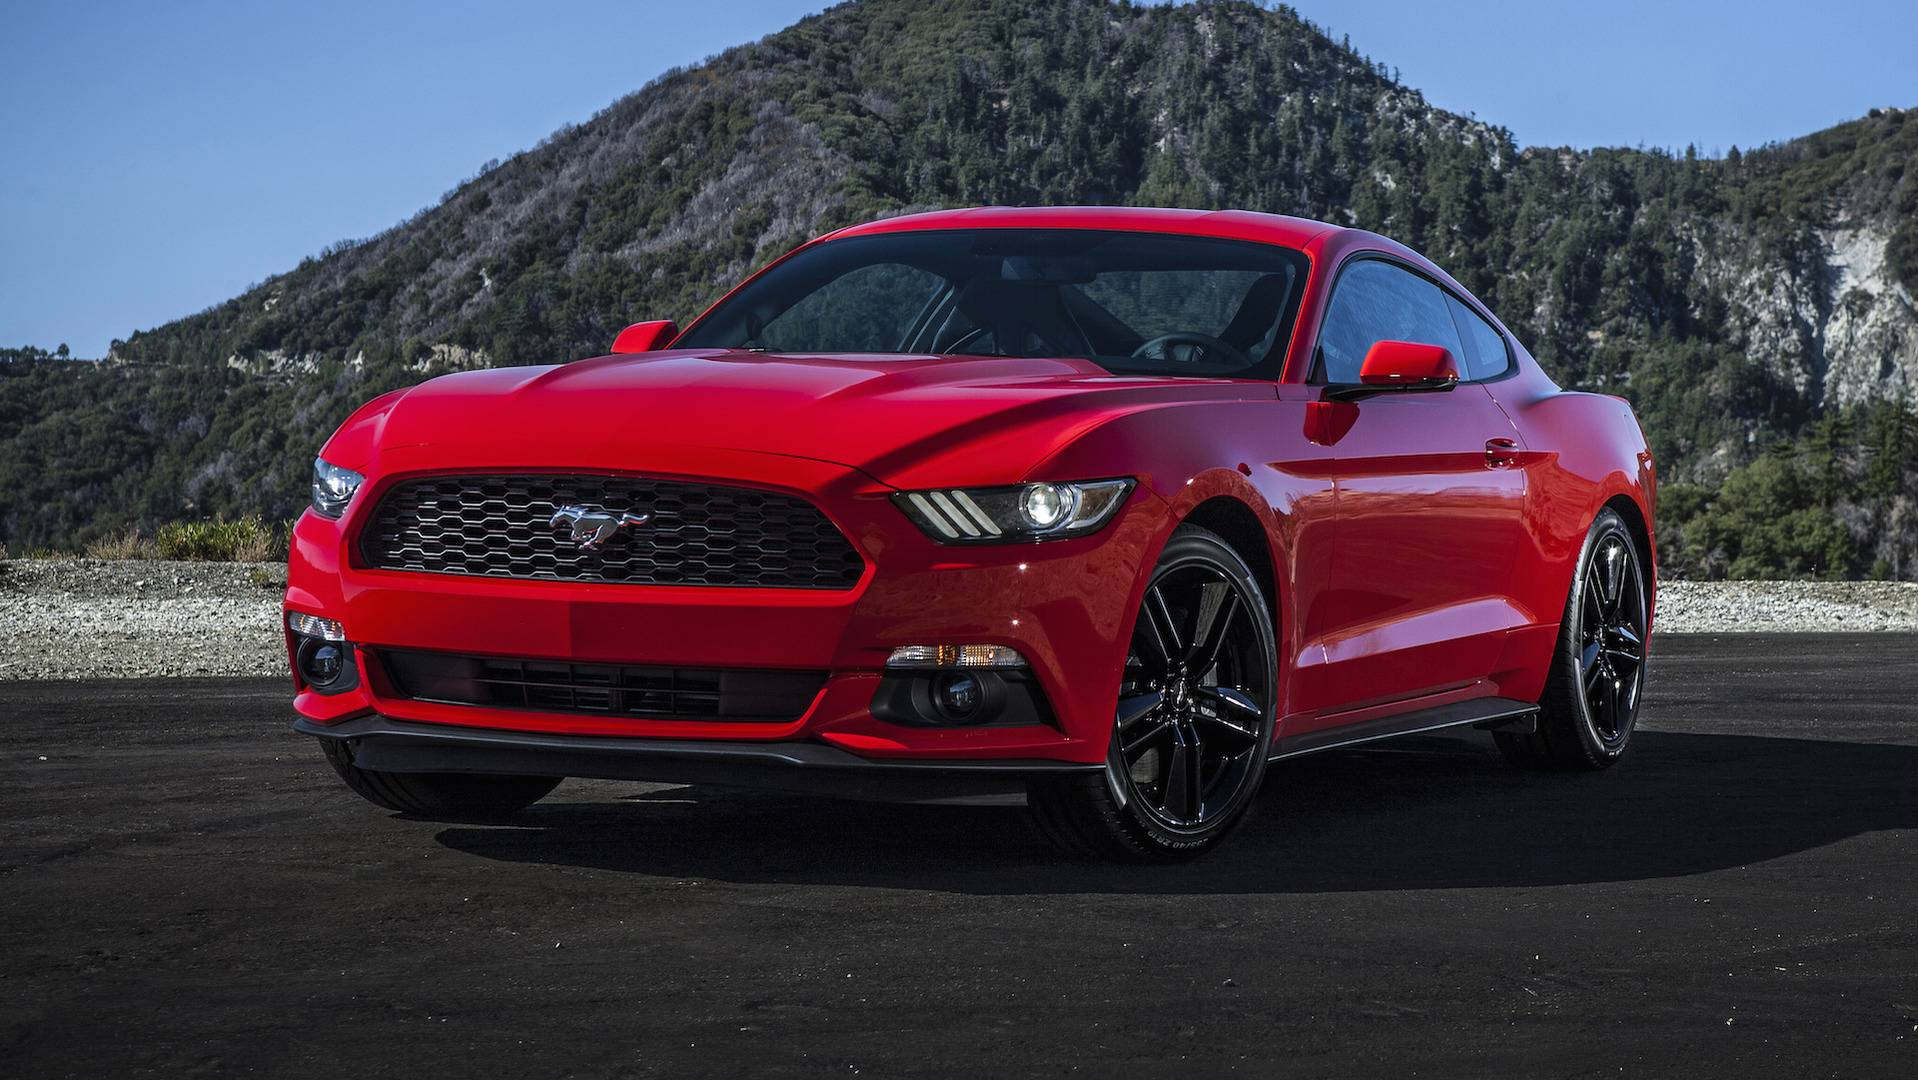 Ford Mustang Ecoboost >> 2020 Ford Mustang Getting More Powerful Ecoboost Engine